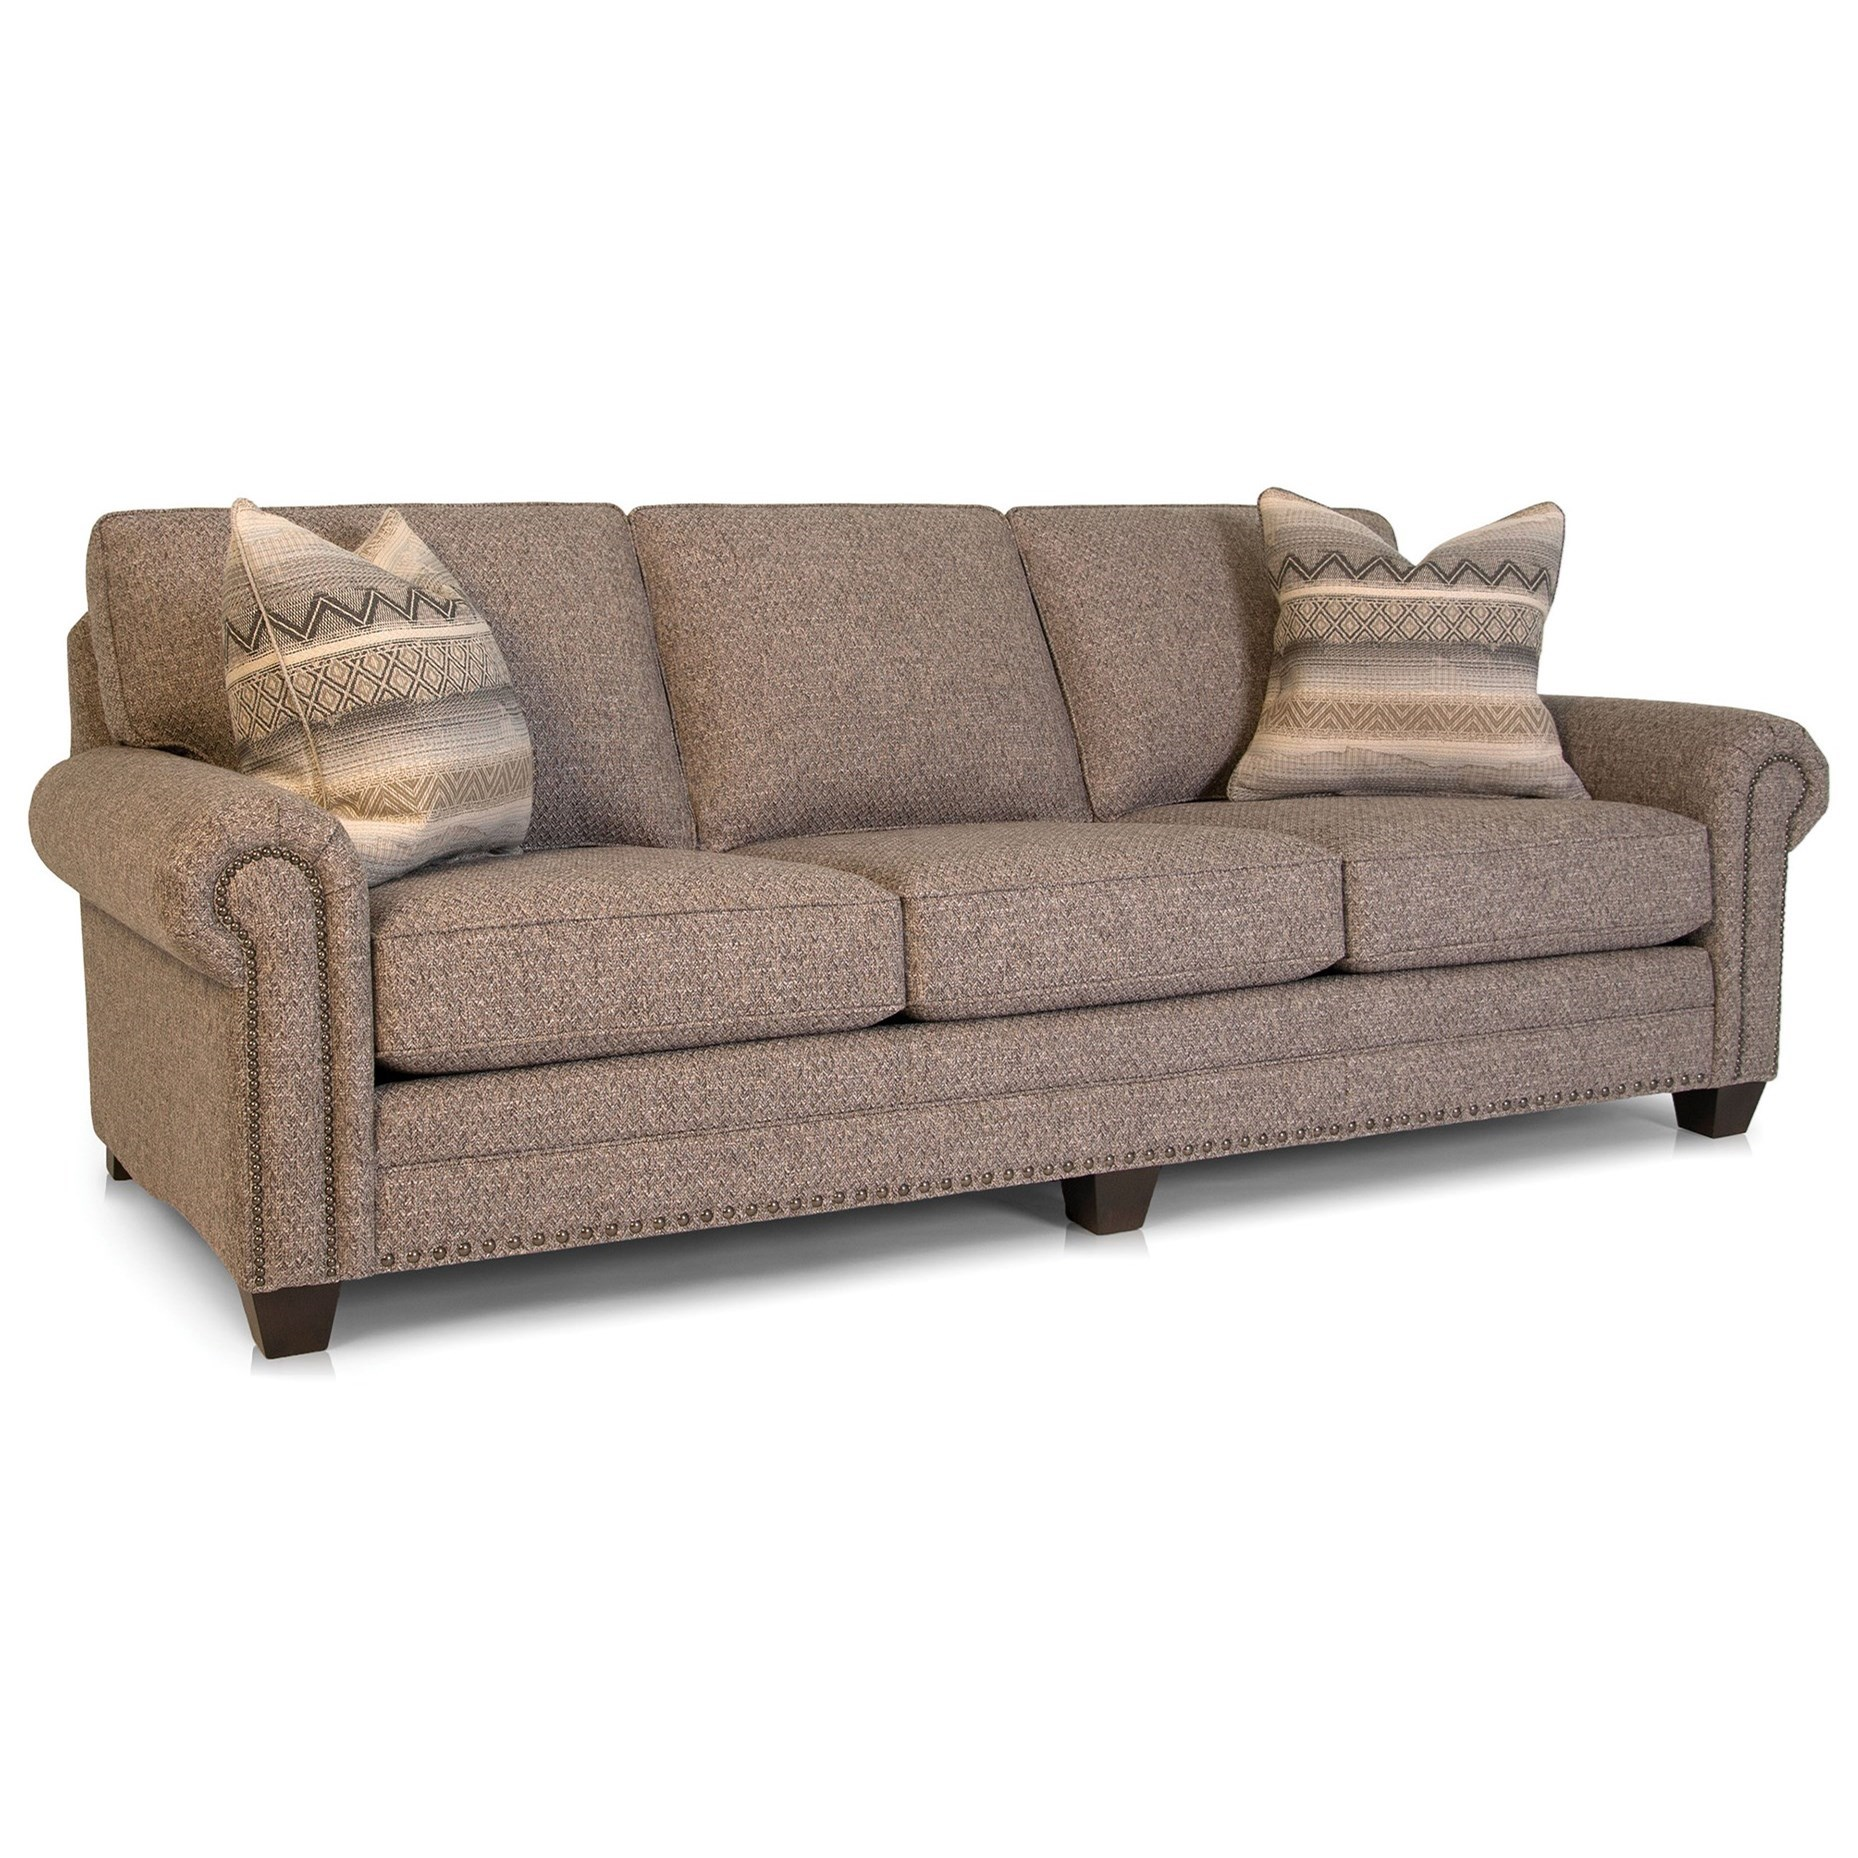 253 Sofa by Smith Brothers at Westrich Furniture & Appliances